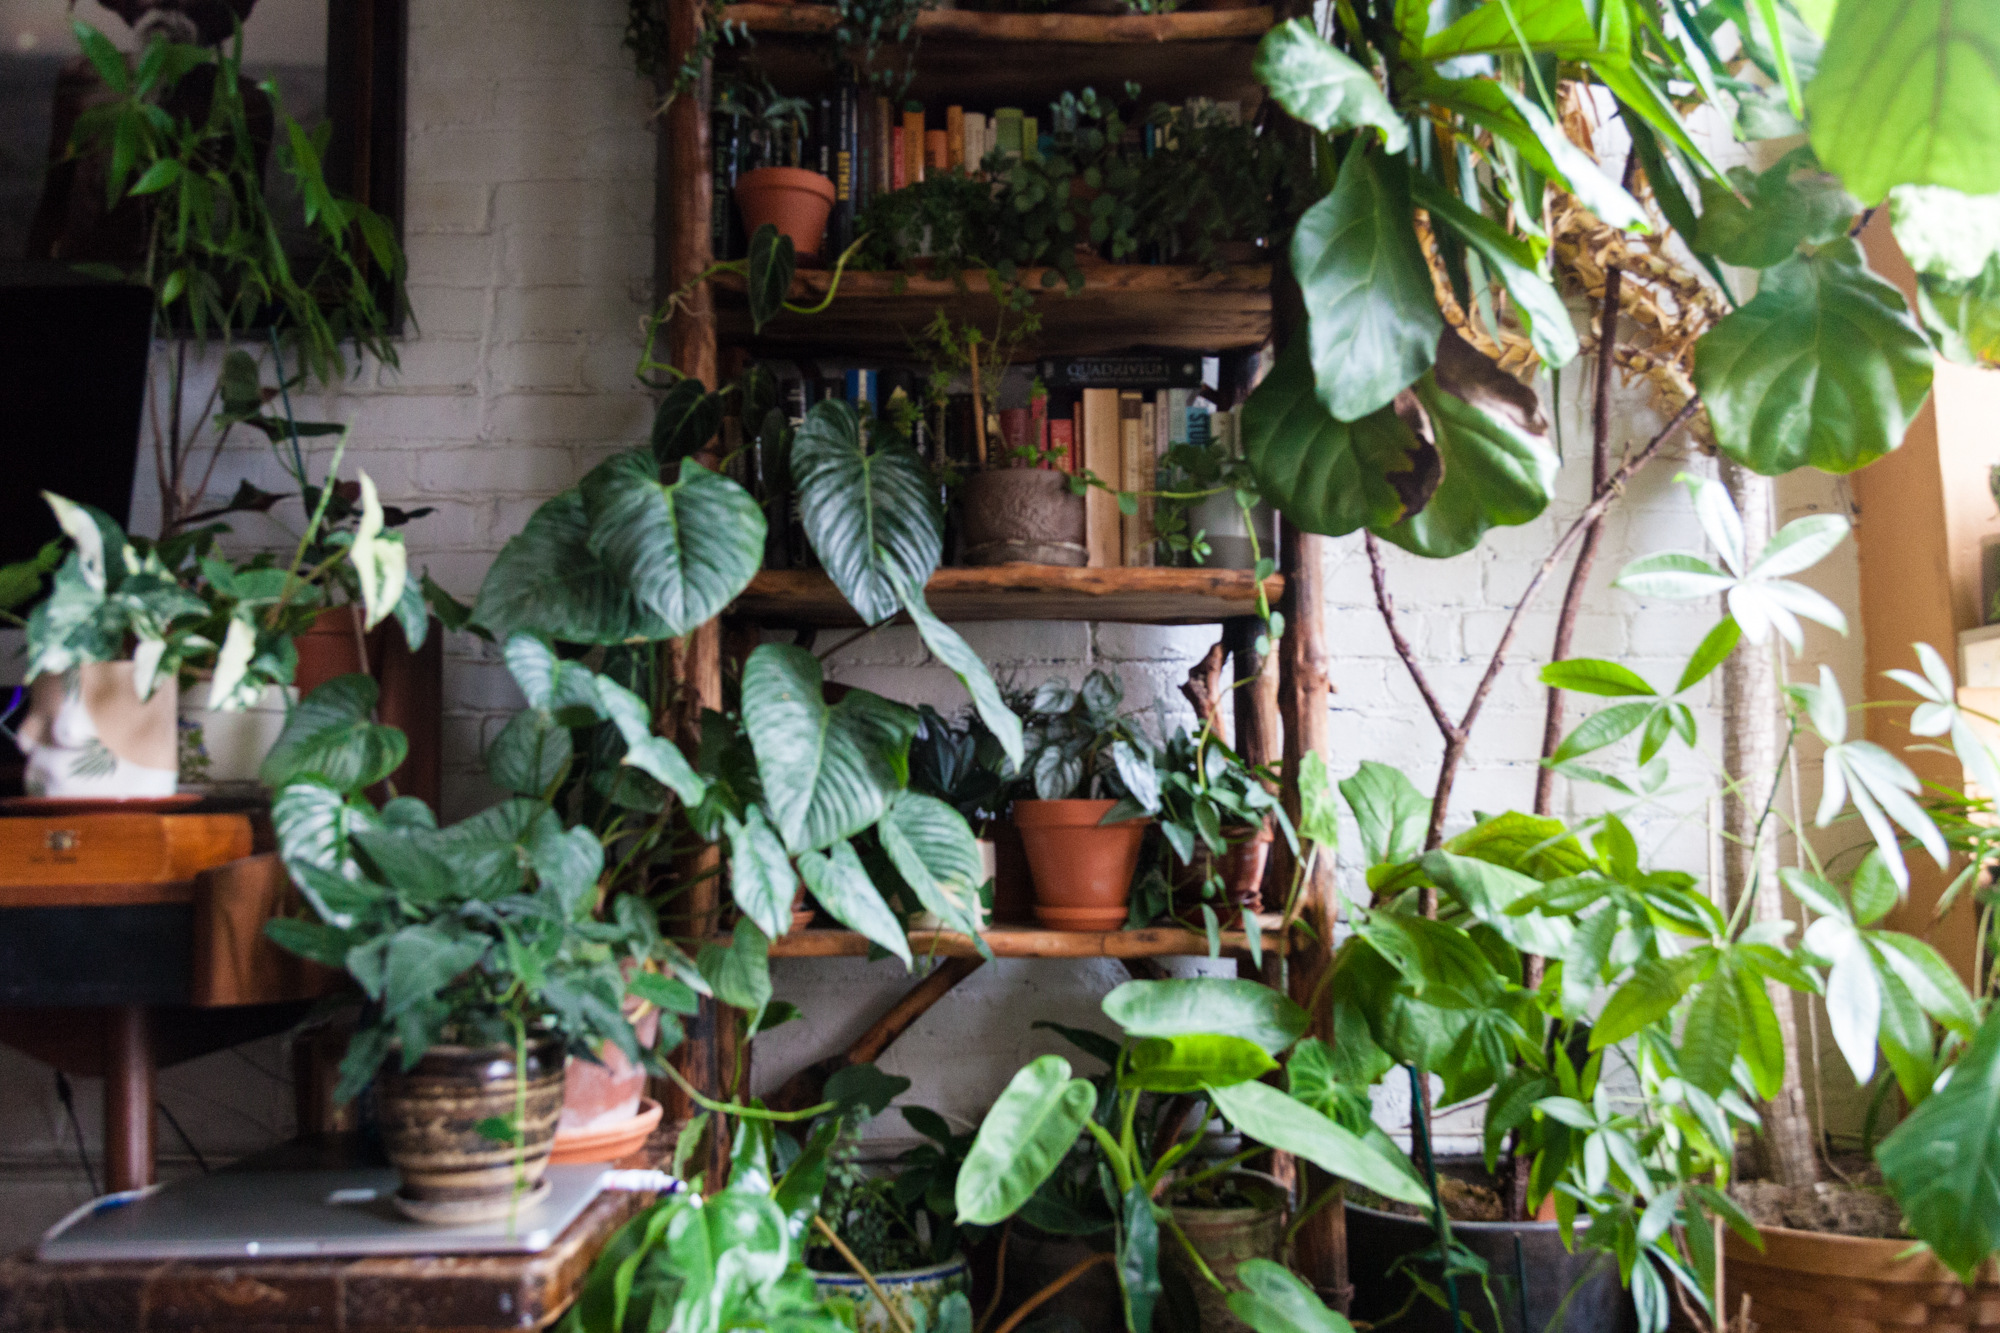 House Plants: Which of these 30 Best House Plants should You get? on cane plants types u s, mass cane plant, ruby jade plant, sugar cane plant, cane plant care, blue shade plant, cane tree, cane coffee table, pandan plant, ornamental cane plant, butterfly palm plant, dracaena janet craig plant, dragon palm plant, lucky palm plant, corn cane plant, sago palm house plant, dracaena fragrans massangeana corn plant, lisa cane plant, repotting a corn plant,